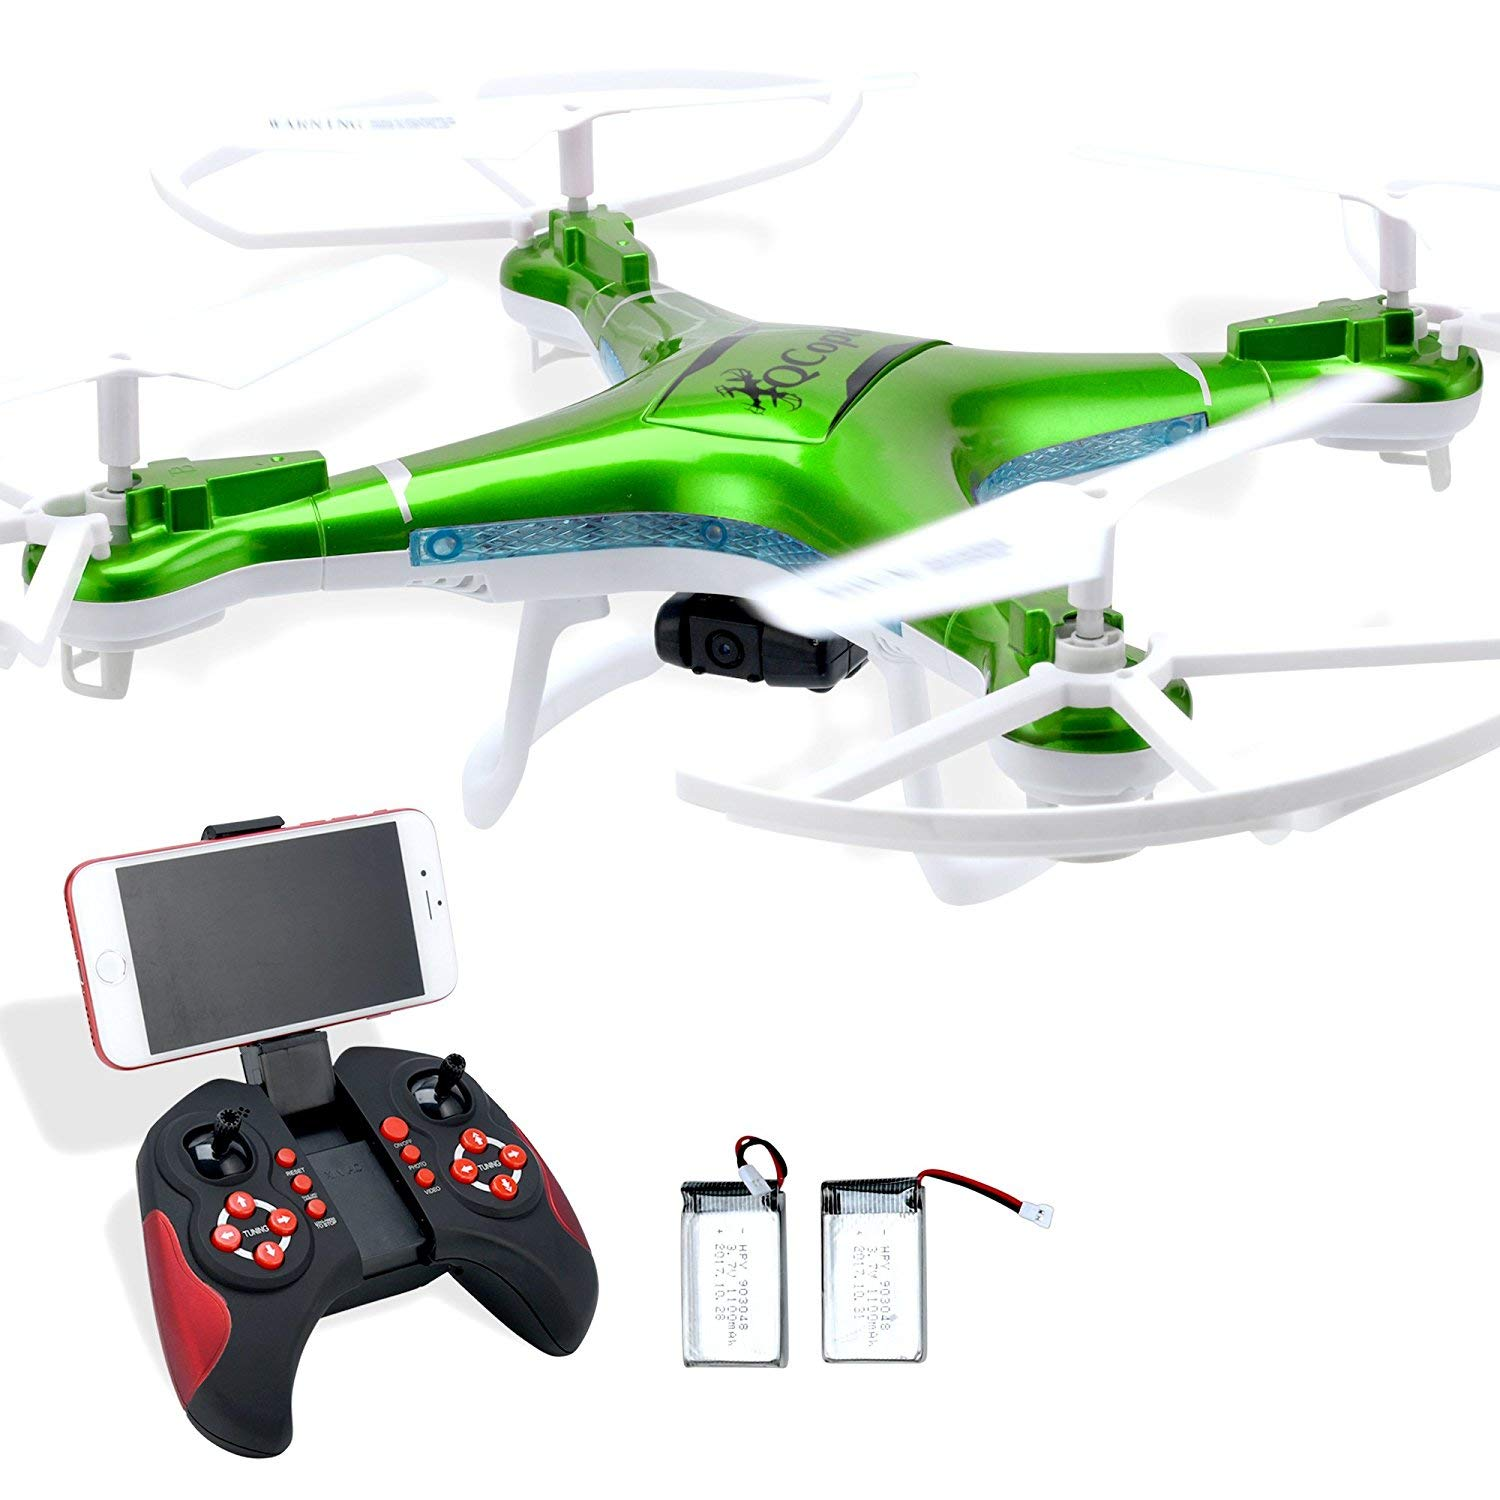 Qs Quadcopter Green Drones for sale with camera. Drone with Double flight time. Drone LED lighting Q-copter has Return Home feature. Quintana Sales Inc QC1